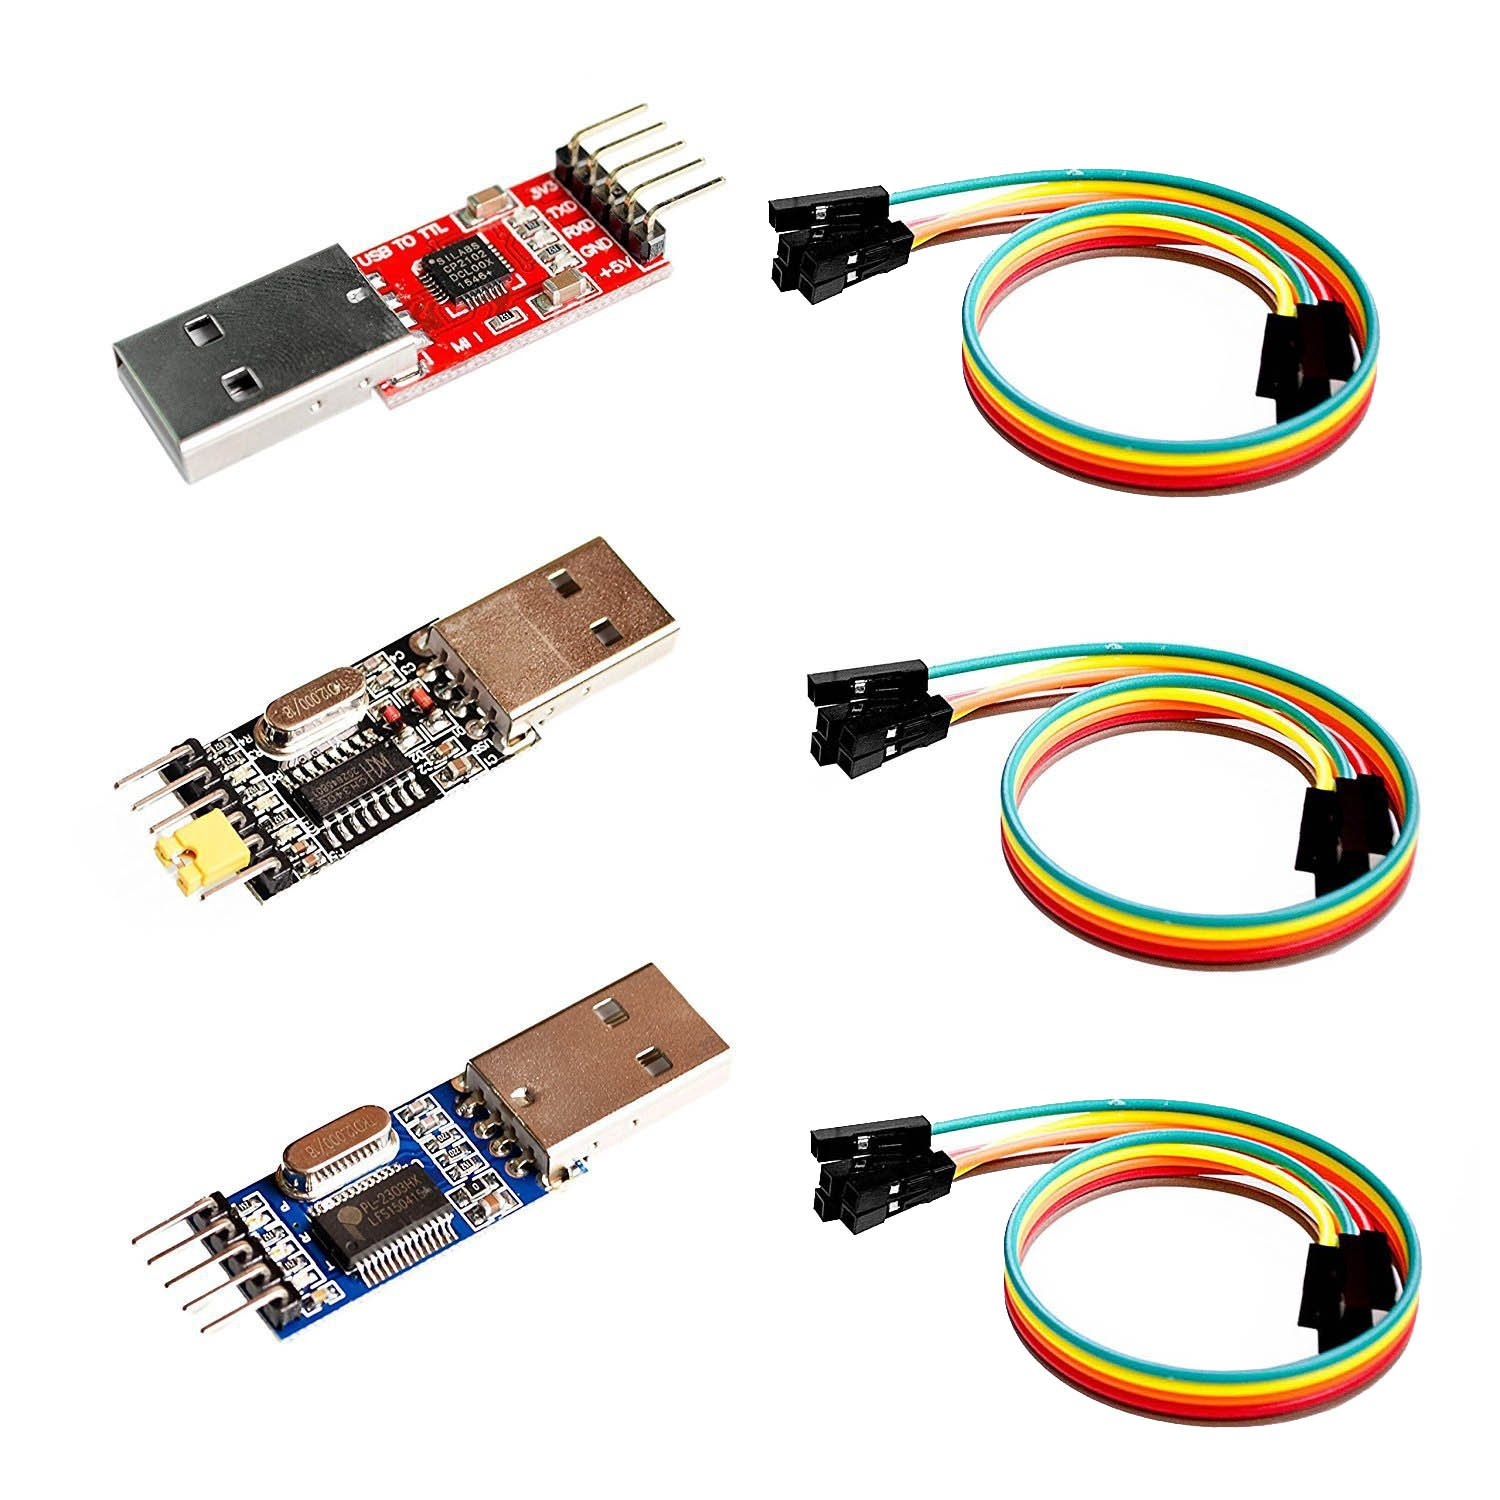 LGDEHOME USB to TTL Seria Converter Adapter 3 in 1 (PL2303+ CP2102+ CH340) ,3Pcs 20cm long STC Microcontroller Download Cable, 4 p dupont line